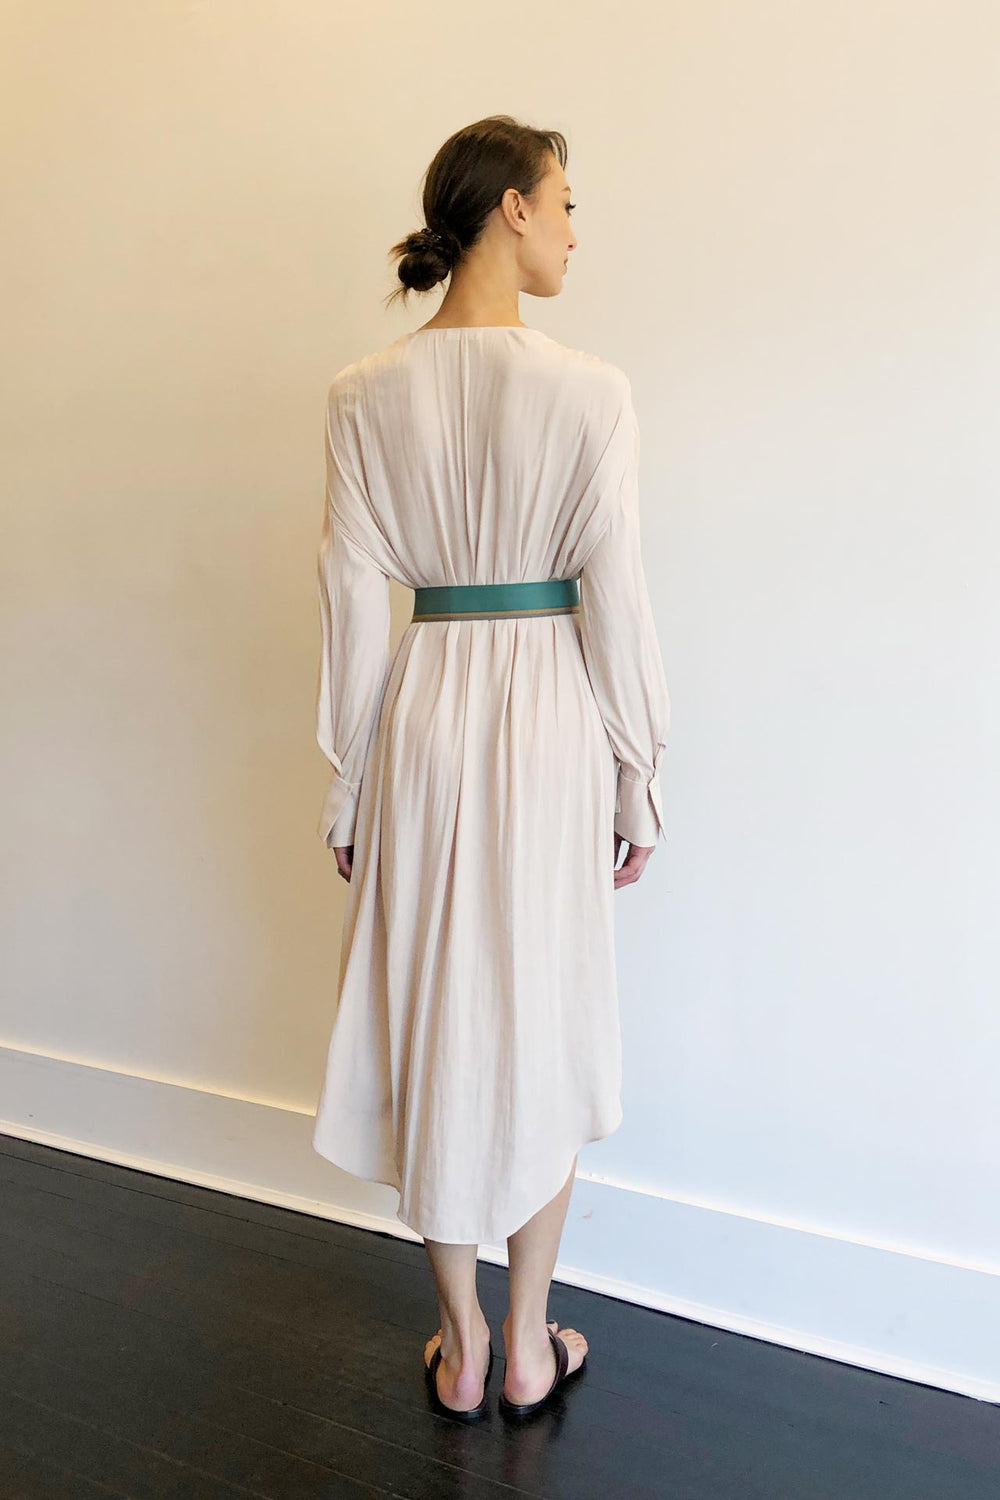 Fashion Designer CARL KAPP collection | Zil Pasyon Onesize Fits All cocktail White dress with sleeves | Sydney Australia